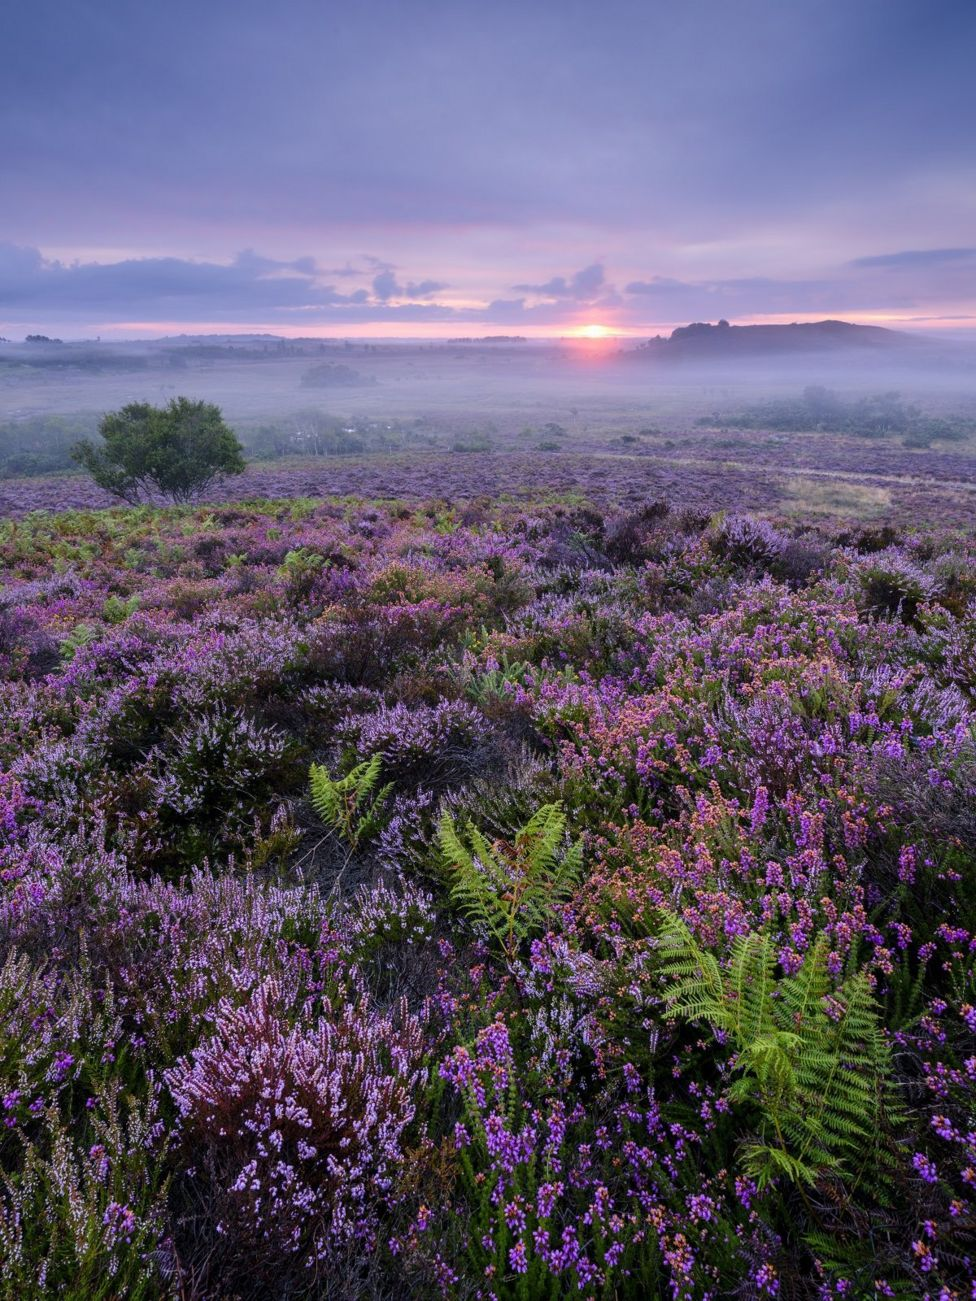 Purple heather in a misty landscape